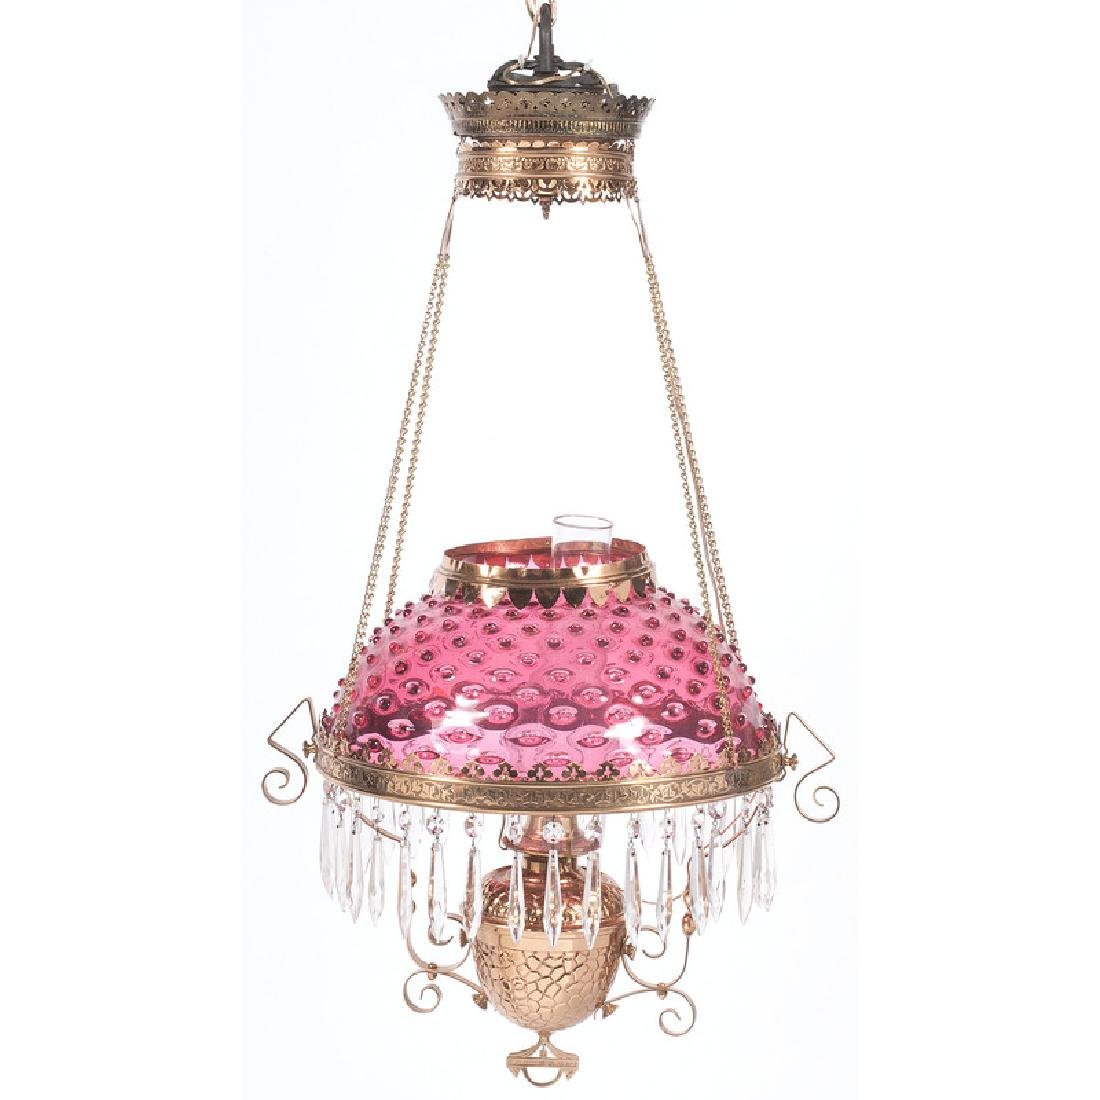 Cranberry Glass Chandelier with Prisms